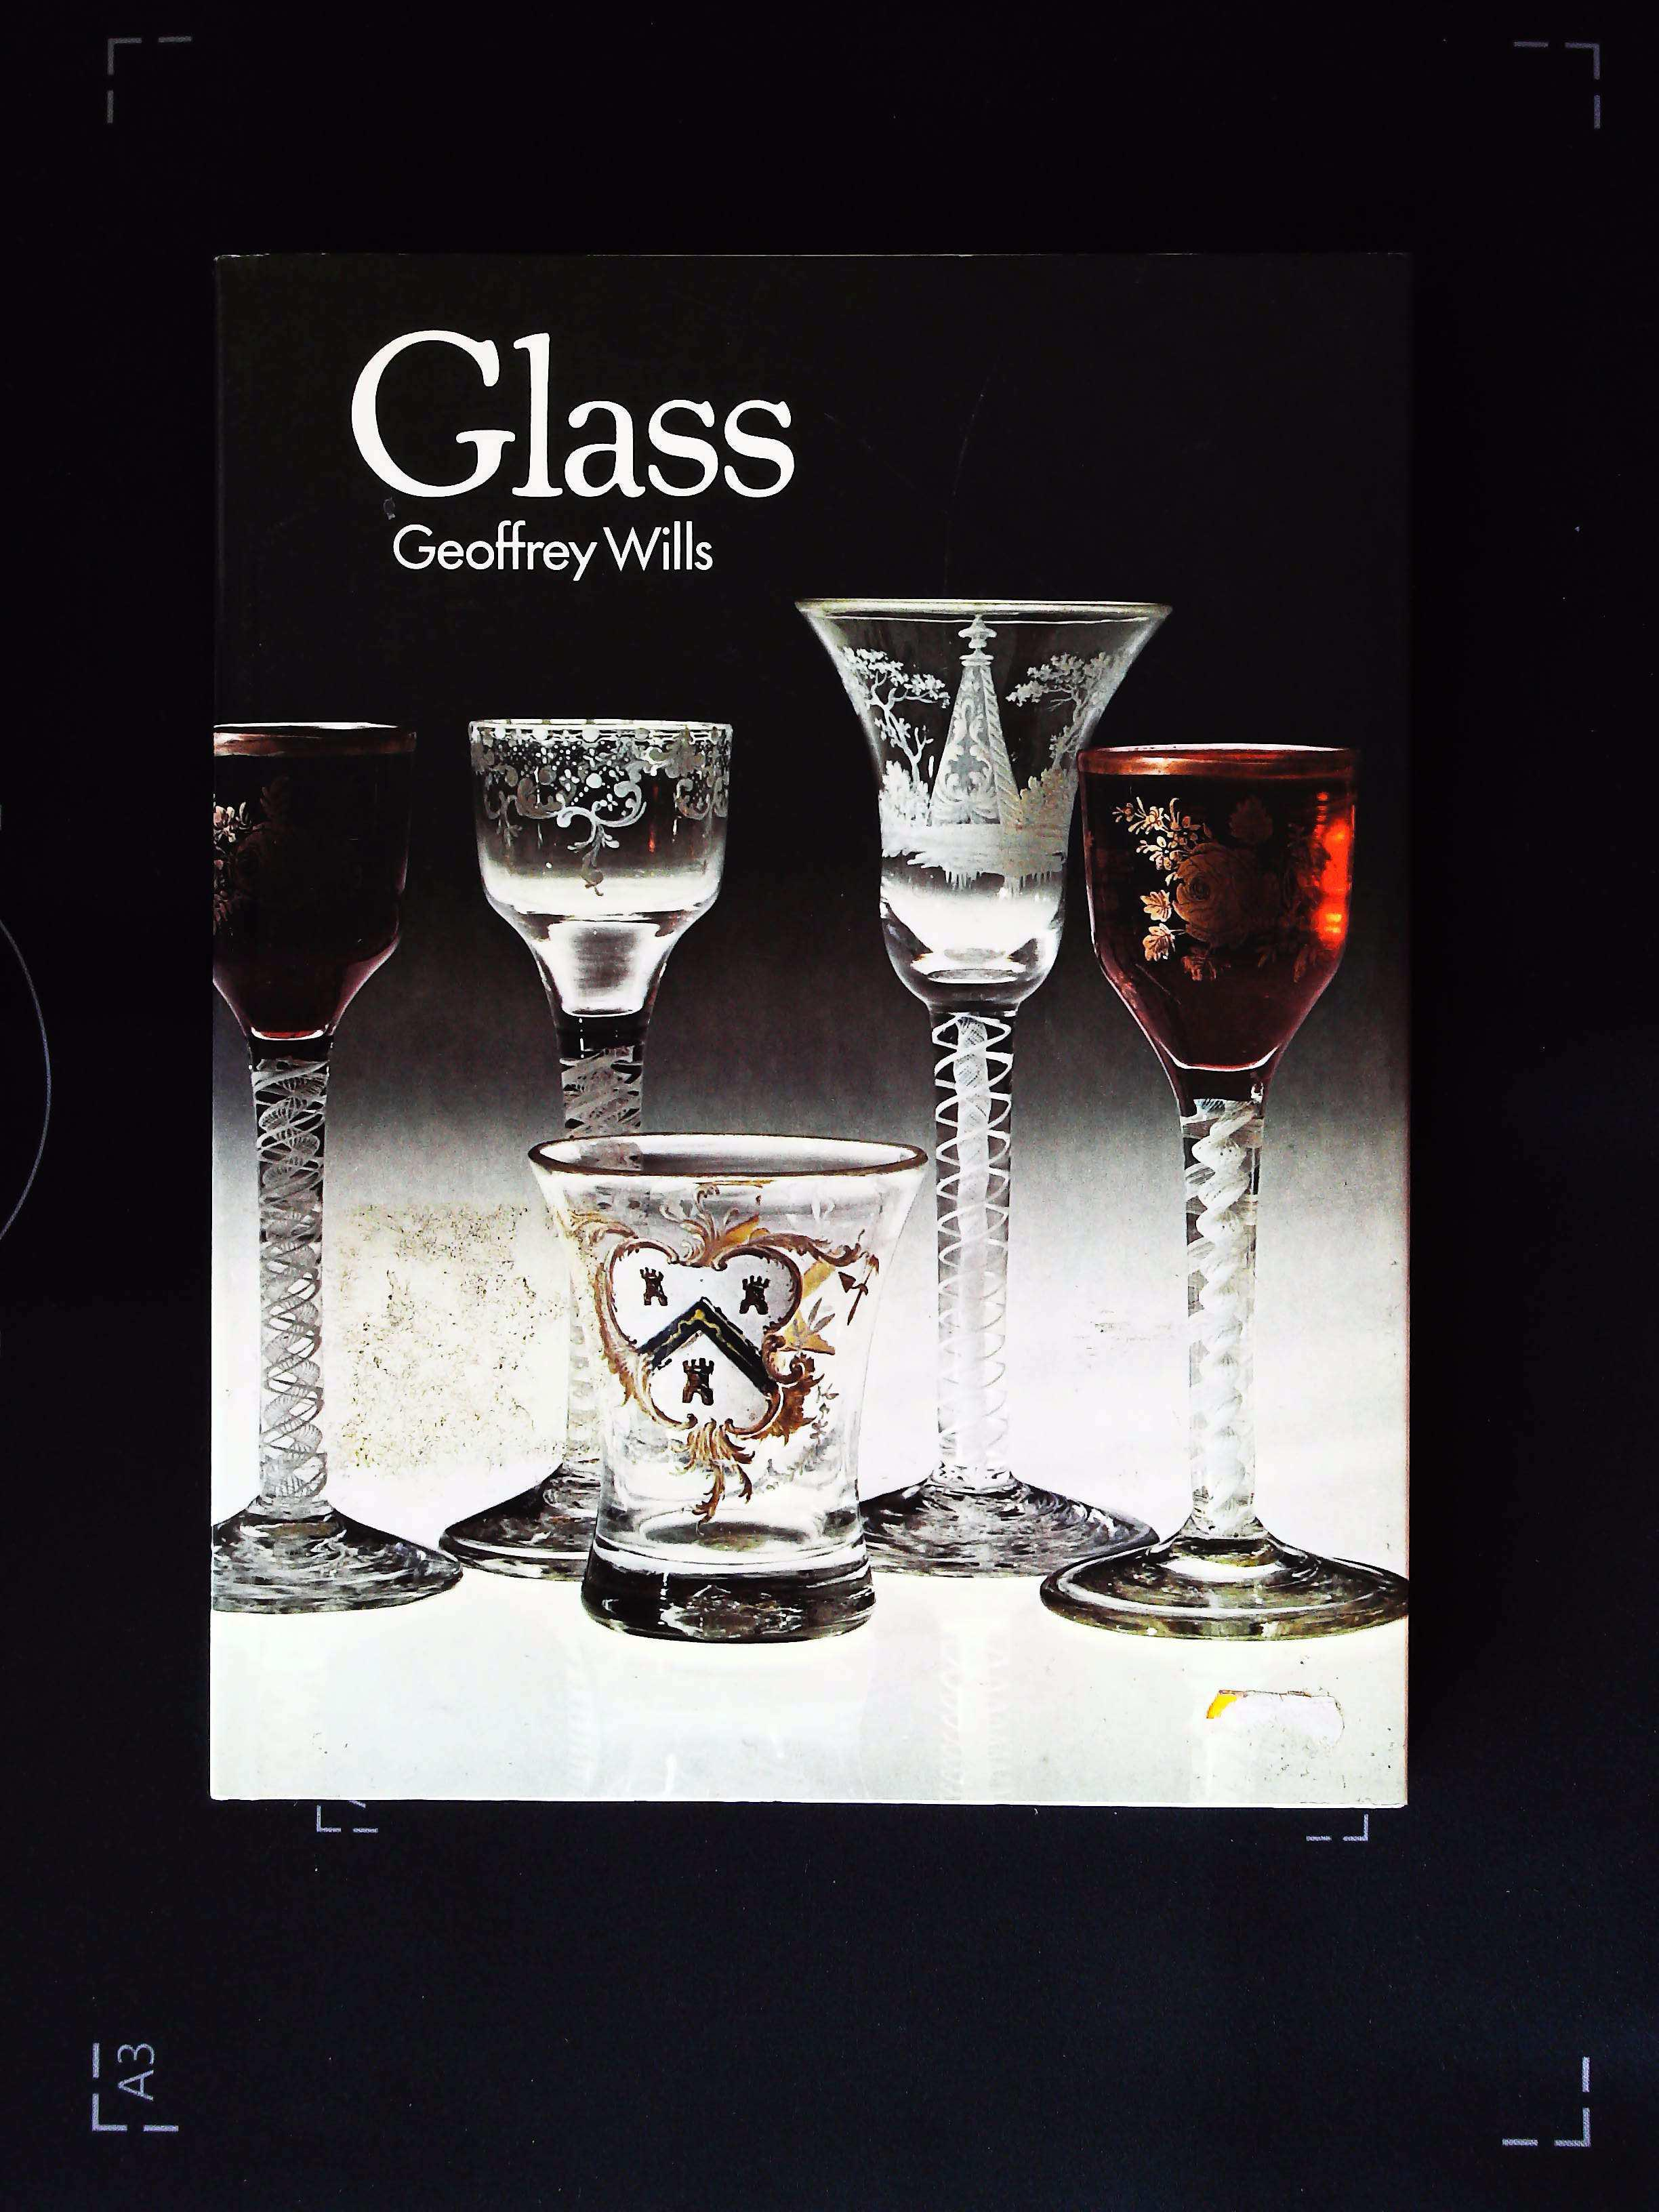 Glass by Geoffrey Wills hardback book 64 pages Published 1981 Galley Press ISBN 0 86136 005 2. In